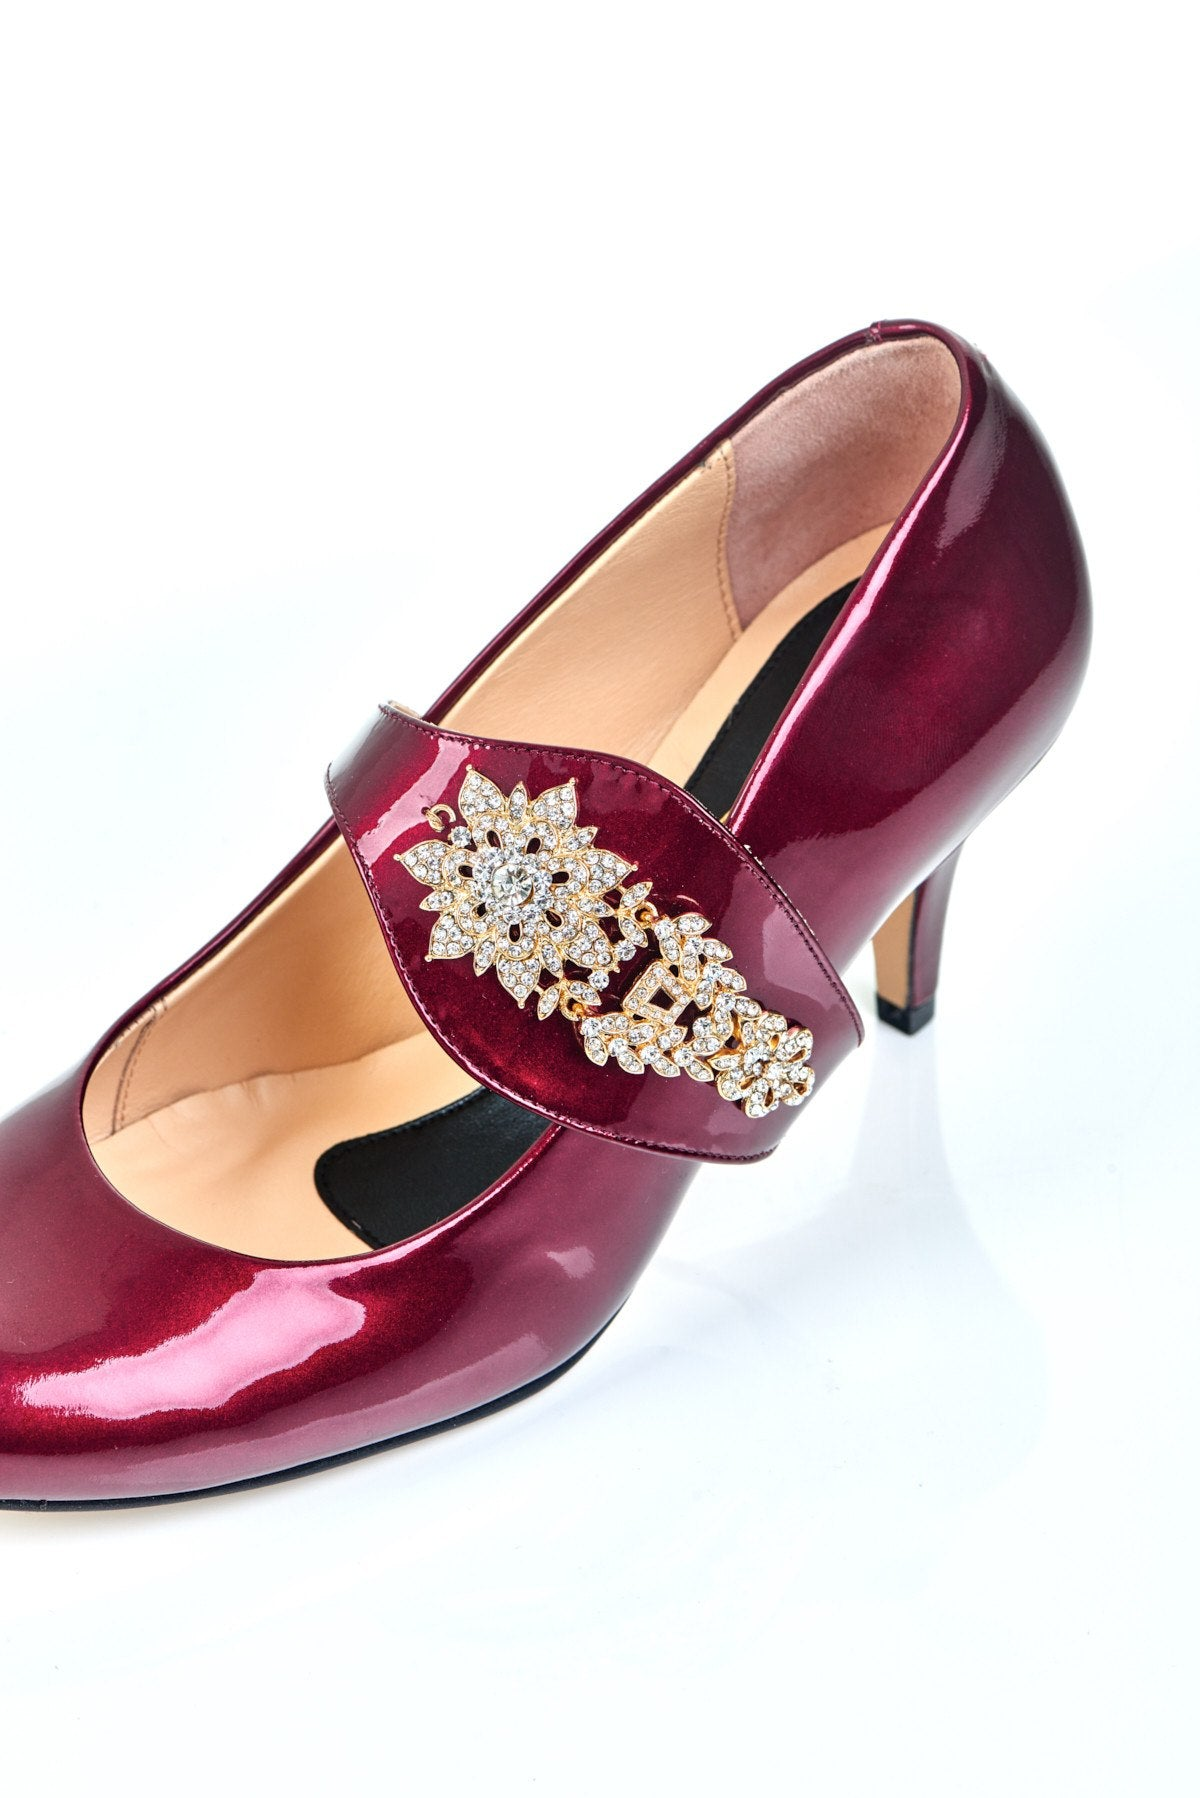 Equally Every After - Mulberry Shoellery - Shoes by Shaherazad